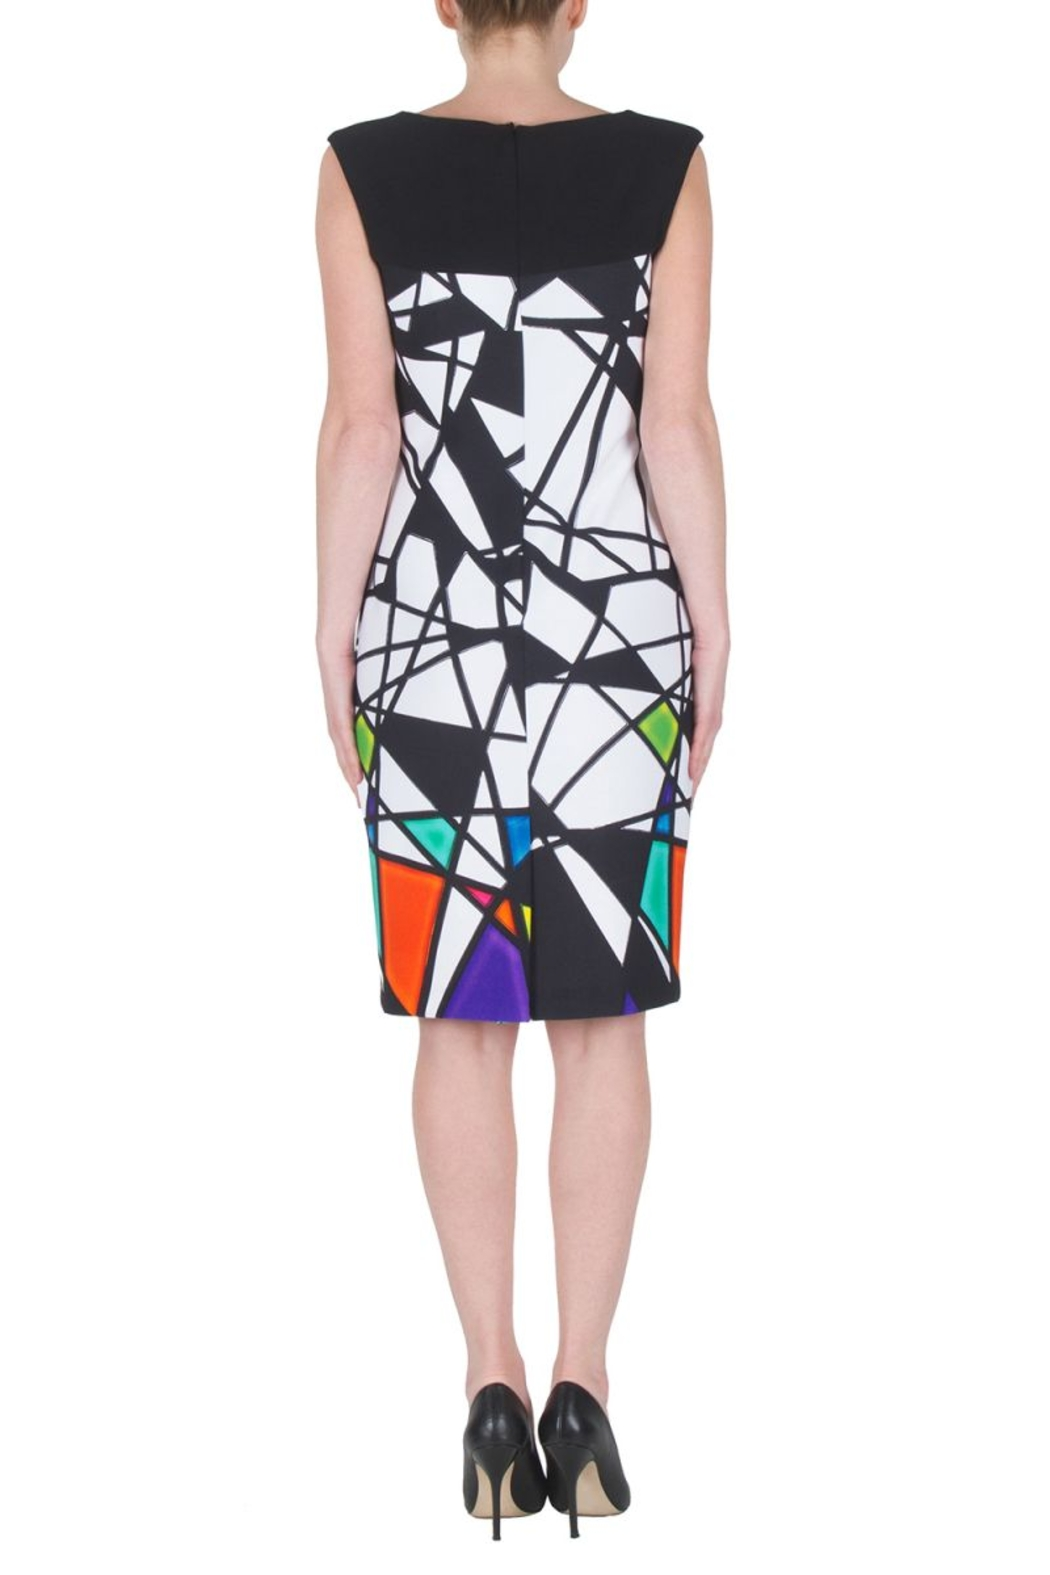 Joseph Ribkoff  Multicolored Abstract Geometric Sleeveless Dress. Bateau neck, golden accents and zip closure. - Side Cropped Image